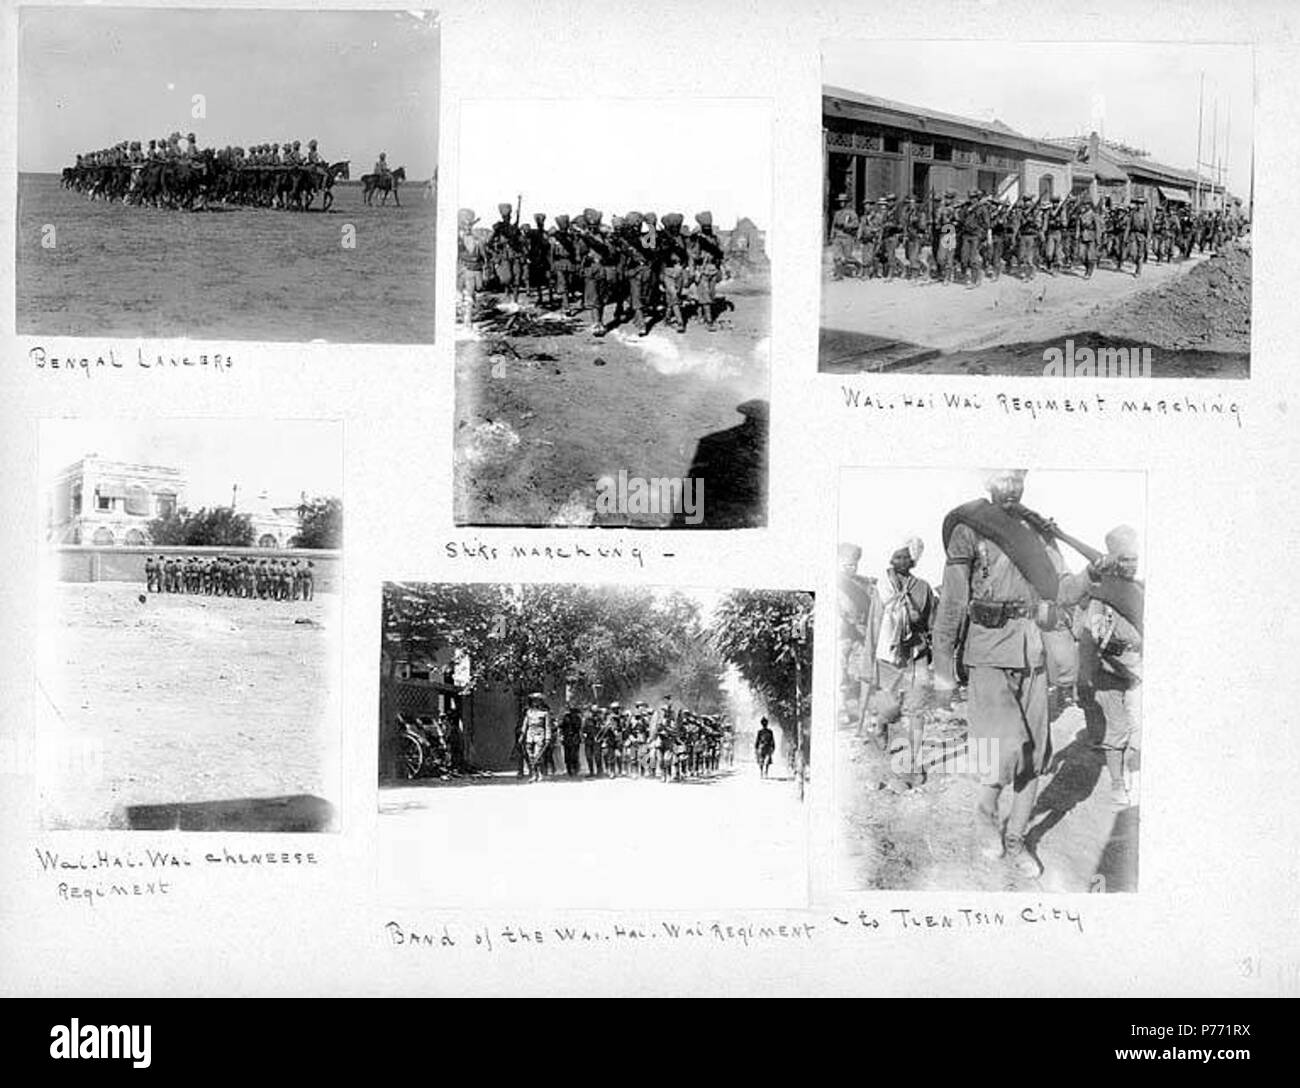 . English: 7.32 Soldiers on the march, 1900 . English: Captions on album page: Bengal Lancers; Shiks [i.e. Sikhs] marching; Wai Hai Wai Regiment marching; Wai Hai Wai Chinese Regiment; Band of the Wai Hai Wai Regiment; to Tien Tsin City . PH Coll 241.B32a-f Subjects (LCTGM): Lancers--Indian--China--Tianjin; Soldiers--Chinese--China--Tianjin; Horses--China--Tianjin Subjects (LCSH): Tianjin (China)--History--Siege, 1900; China--History--Boxer Rebellion, 1899-1901; India. Army. Bengal Lancers  . 1900 1 732 Soldiers on the march, 1900 (CHANDLESS 51) - Stock Image